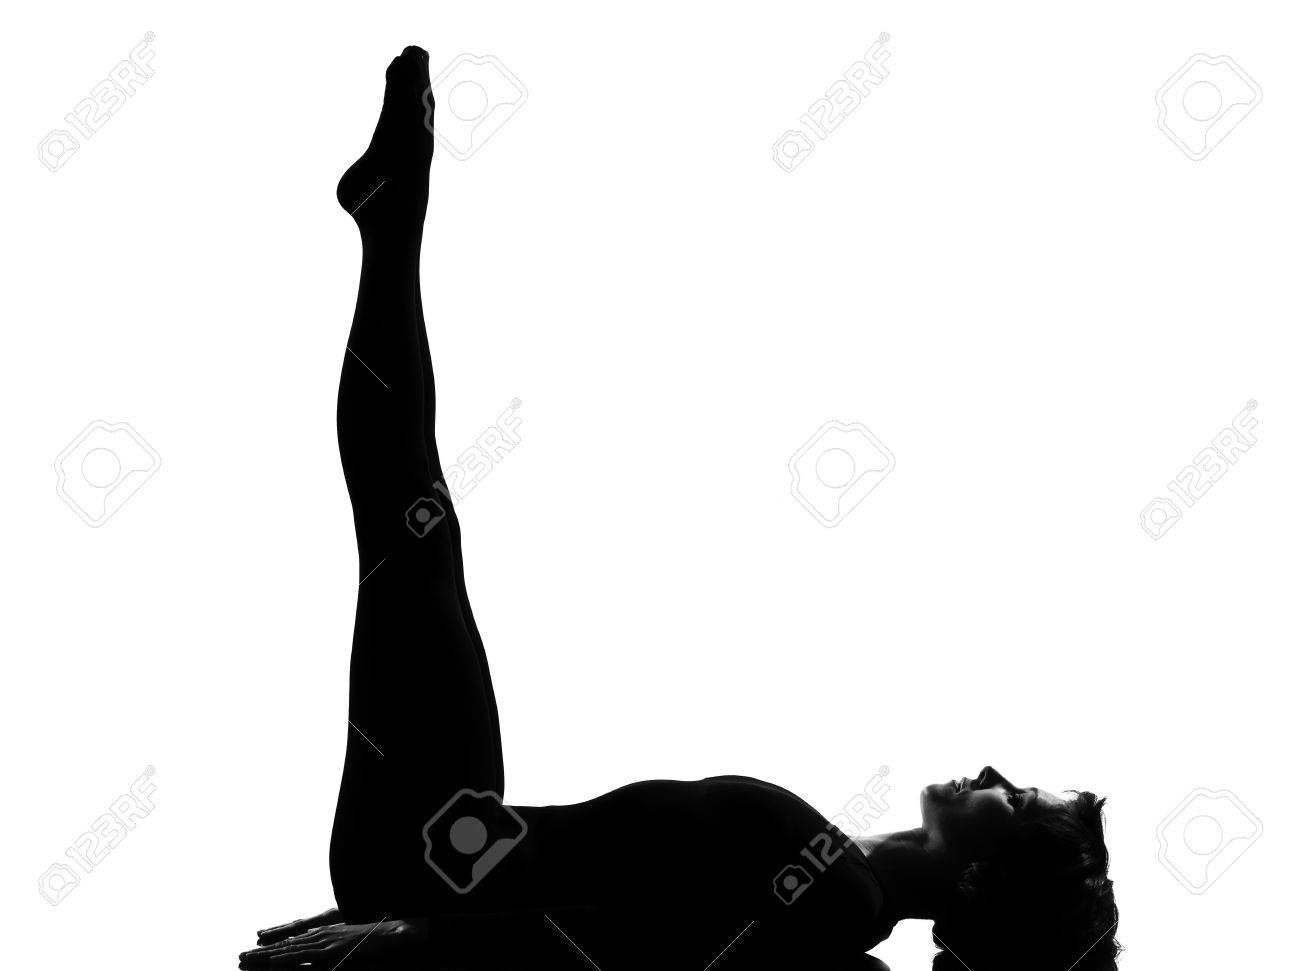 woman yoga Upward Extended Feet Pose - urdhva prasarita padasana exercising lying on back fitness yoga stretching  in shadow grayscale silhouette full length in studio isolated white background Stock Photo - 9799784